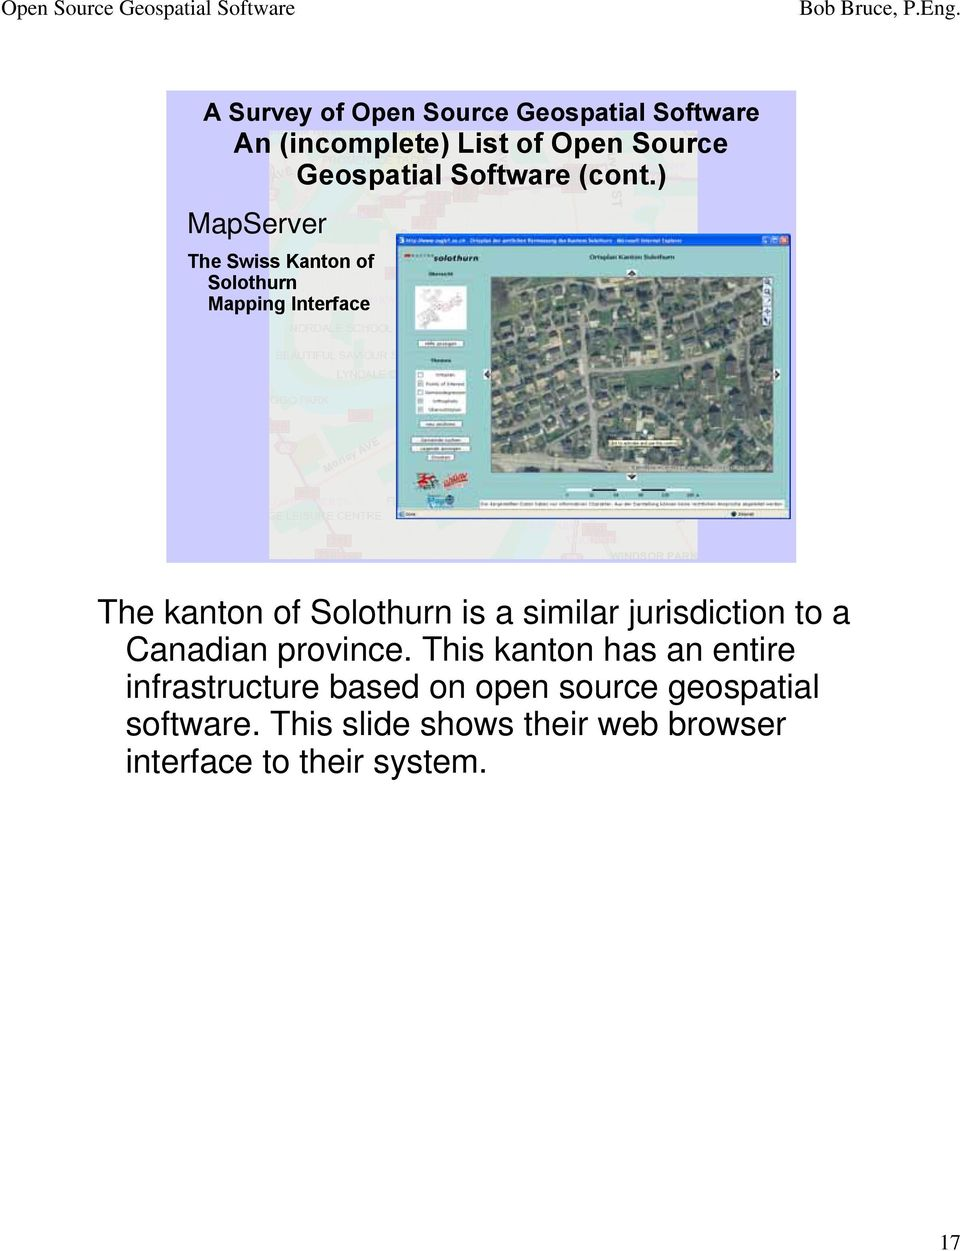 The kanton of Solothurn is a similar jurisdiction to a Canadian province.